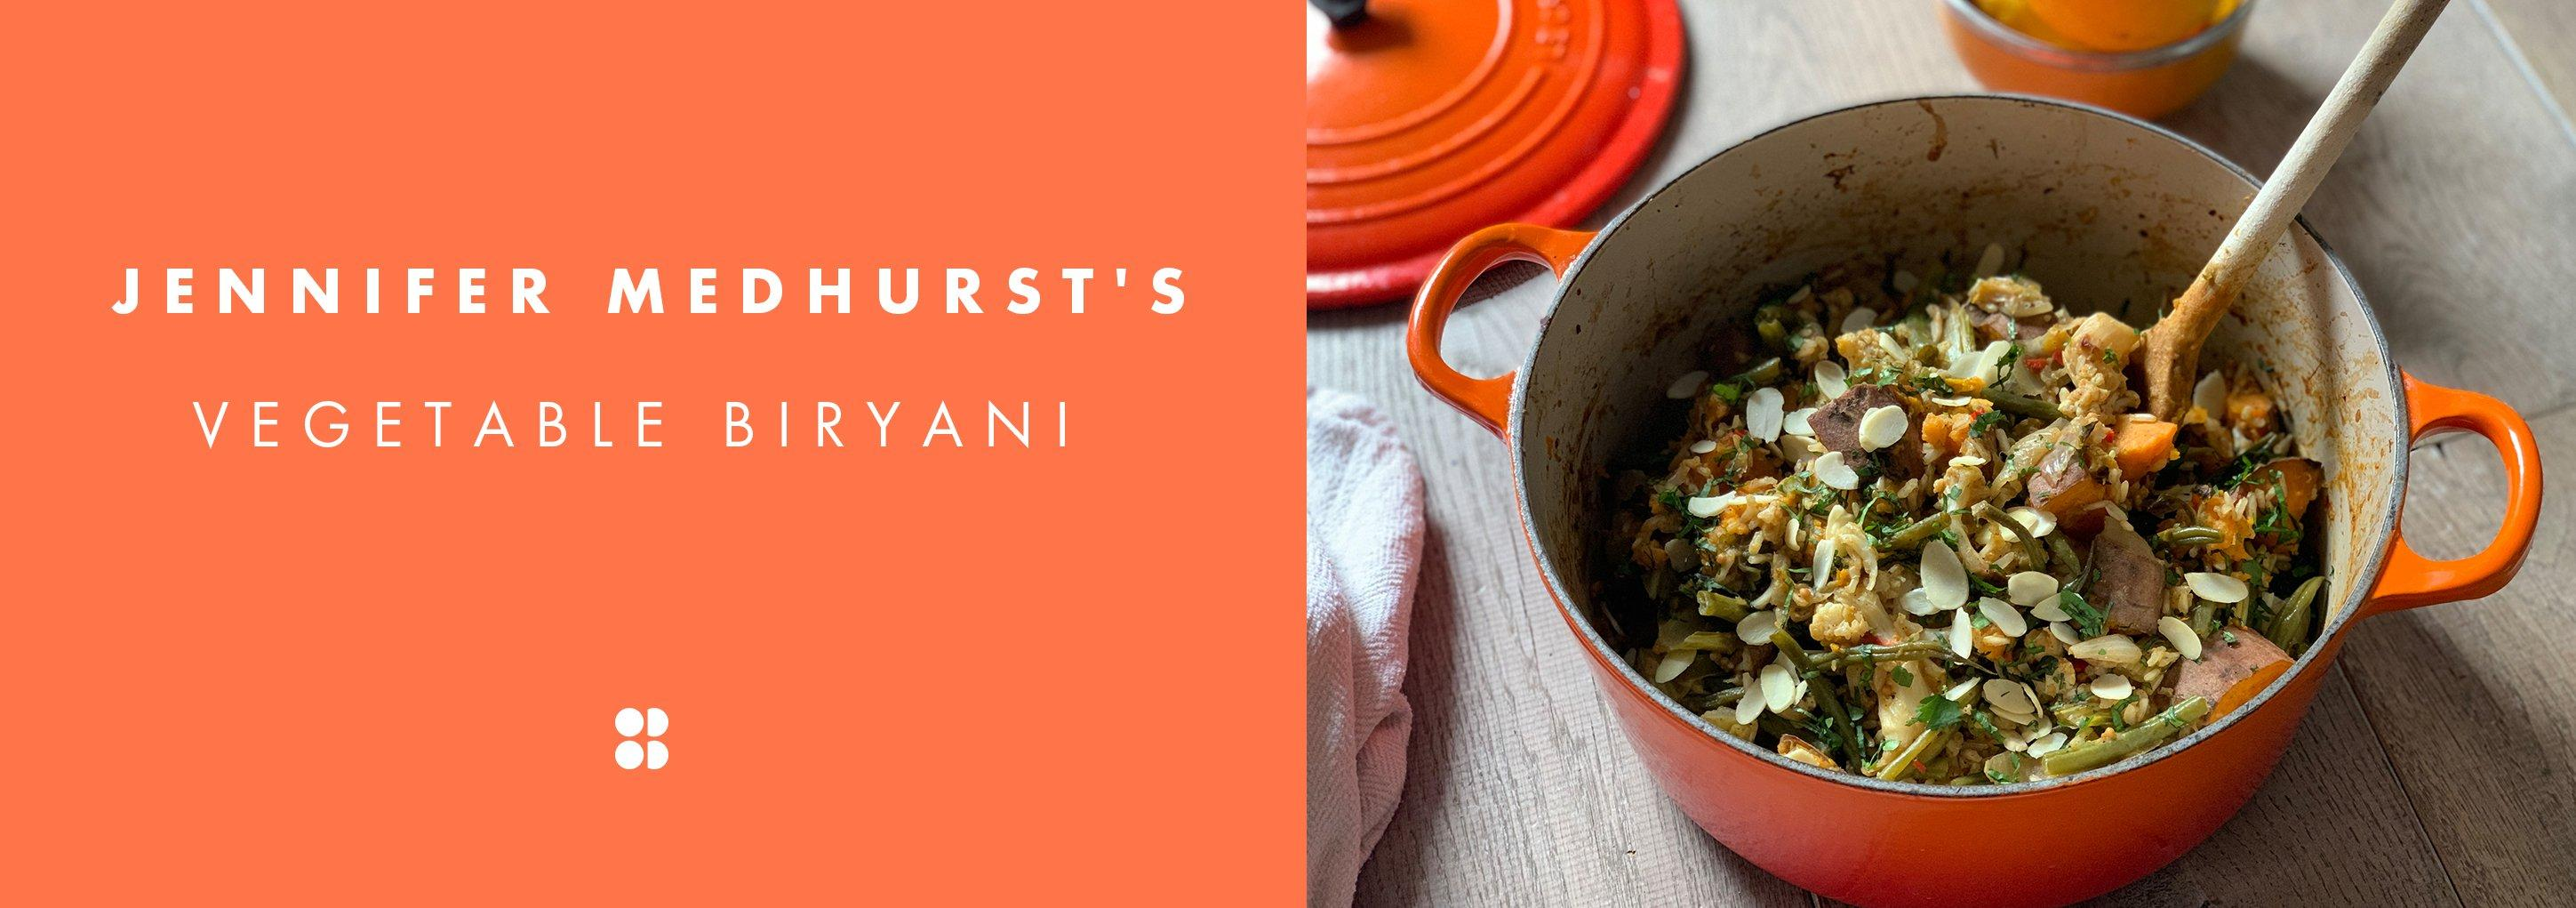 Jennifer Medhurst's Vegetable Biriyani